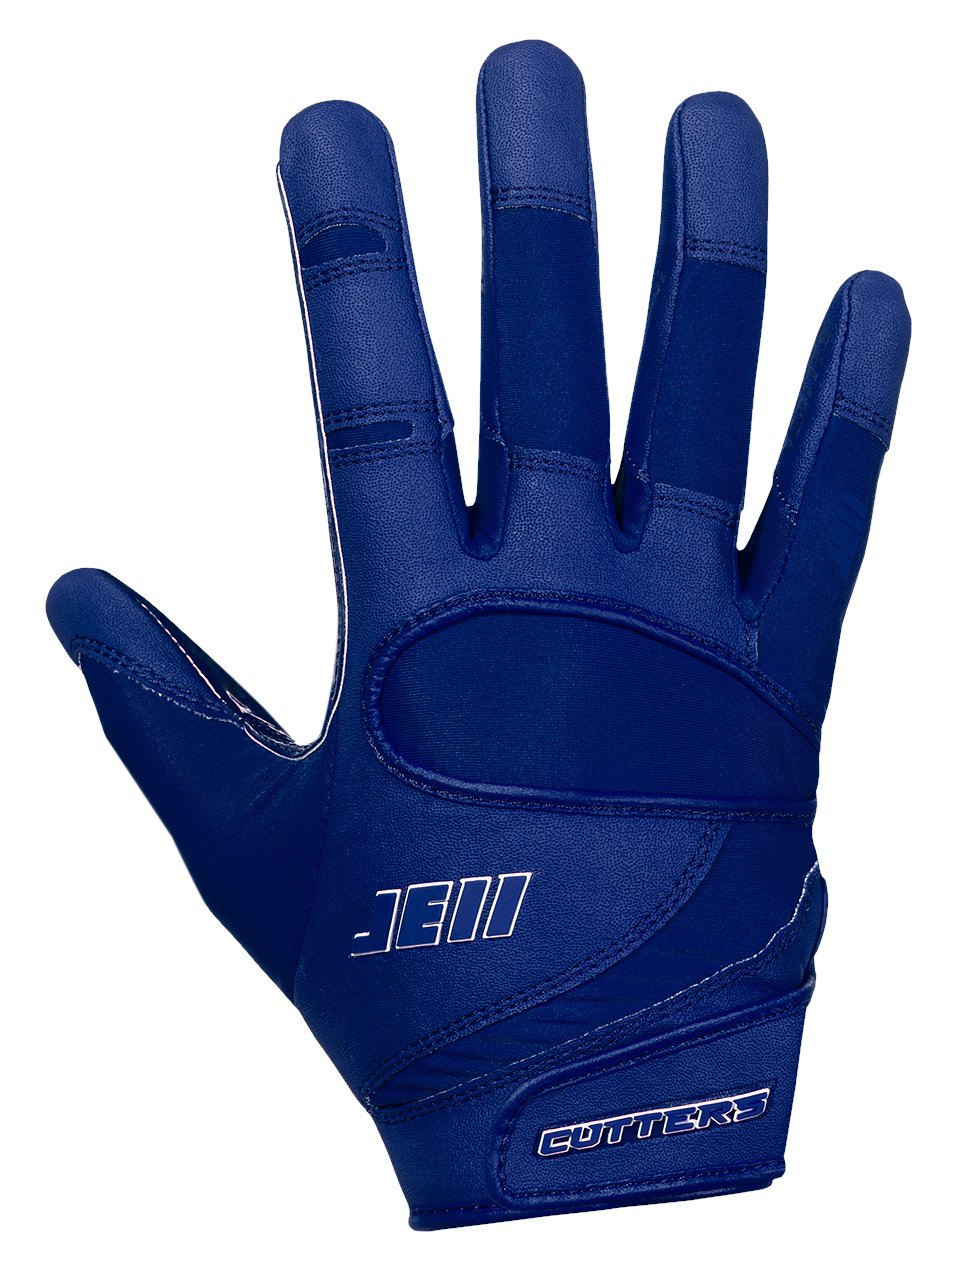 Cutters Gloves Signature Gloves, Navy, Small